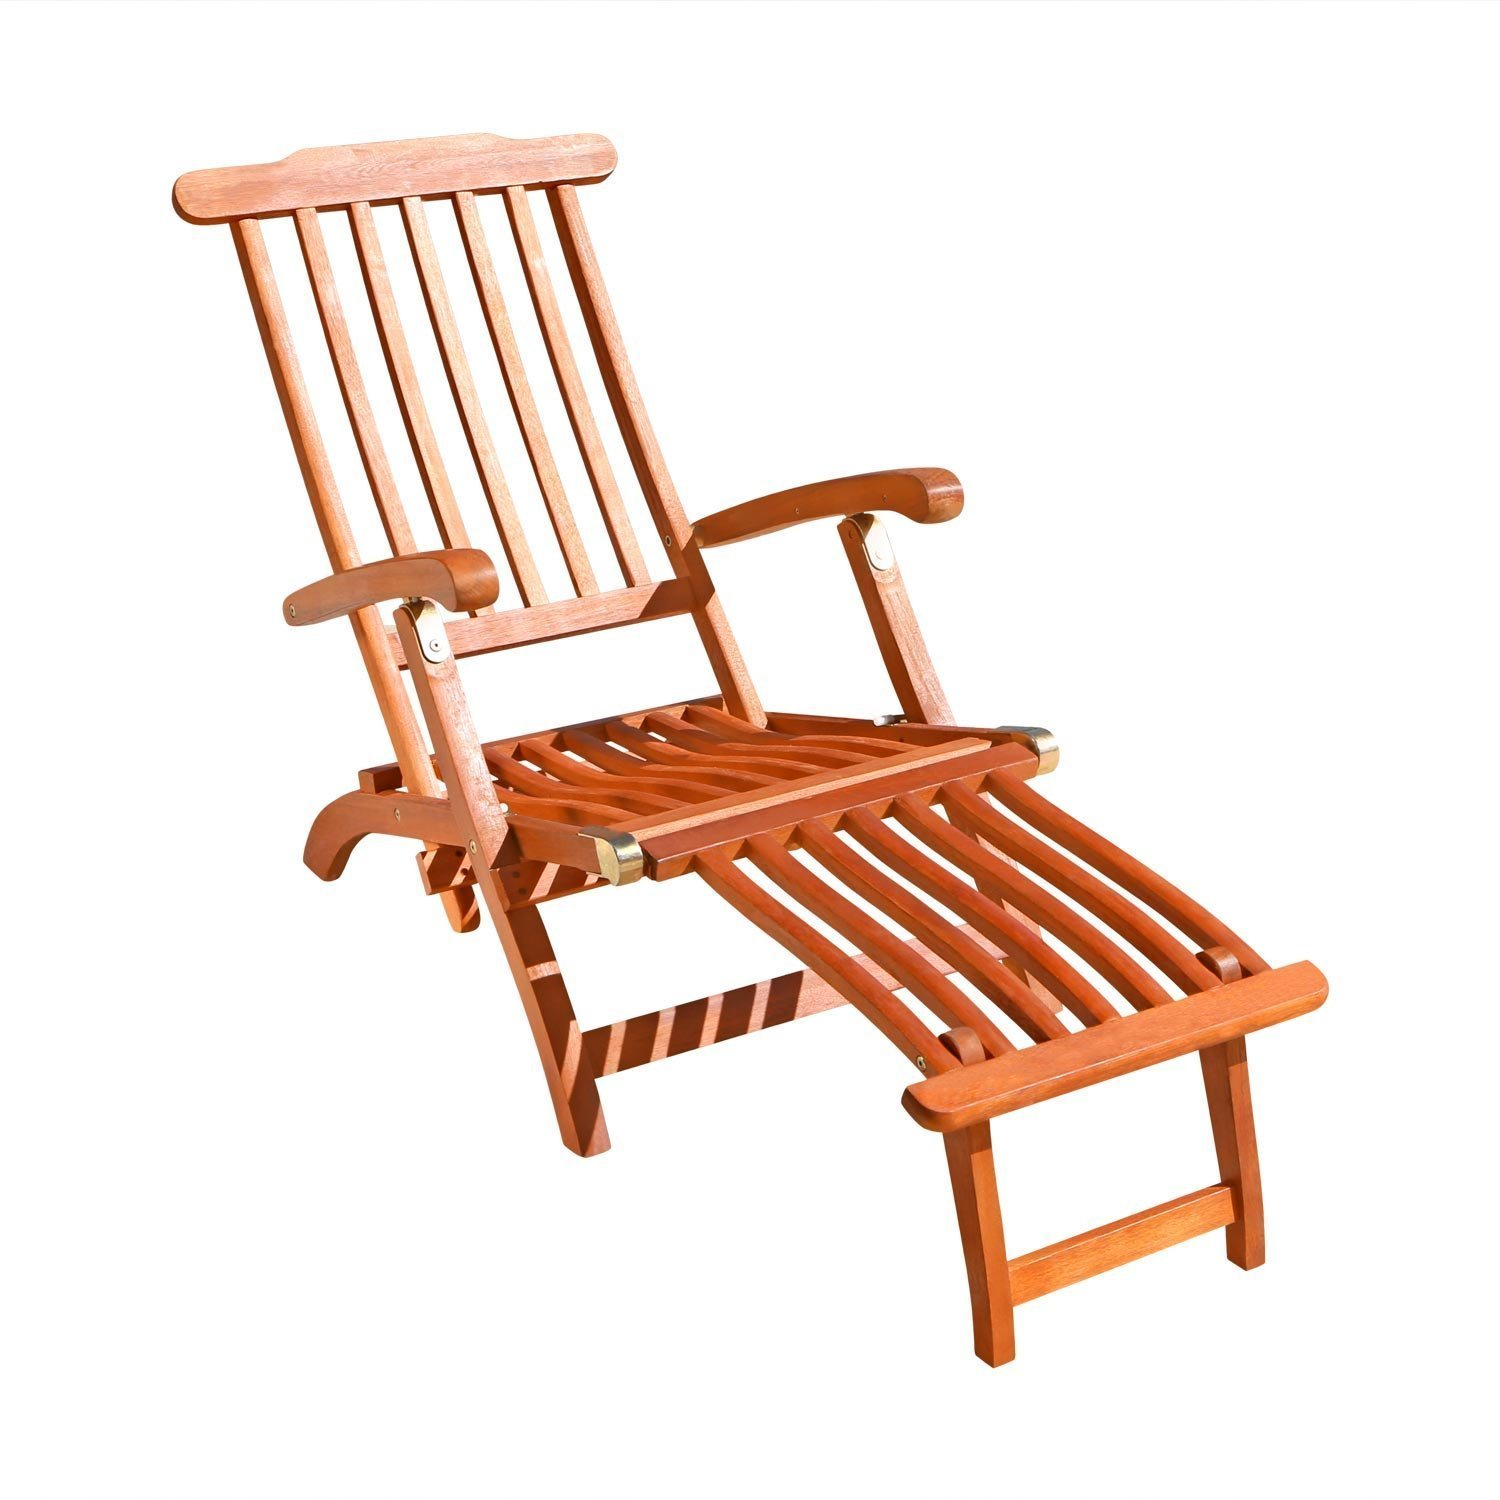 Lounge Chair Folding Recliner Outdoor Wood Pool Patio Beach Yard Lounger Spring